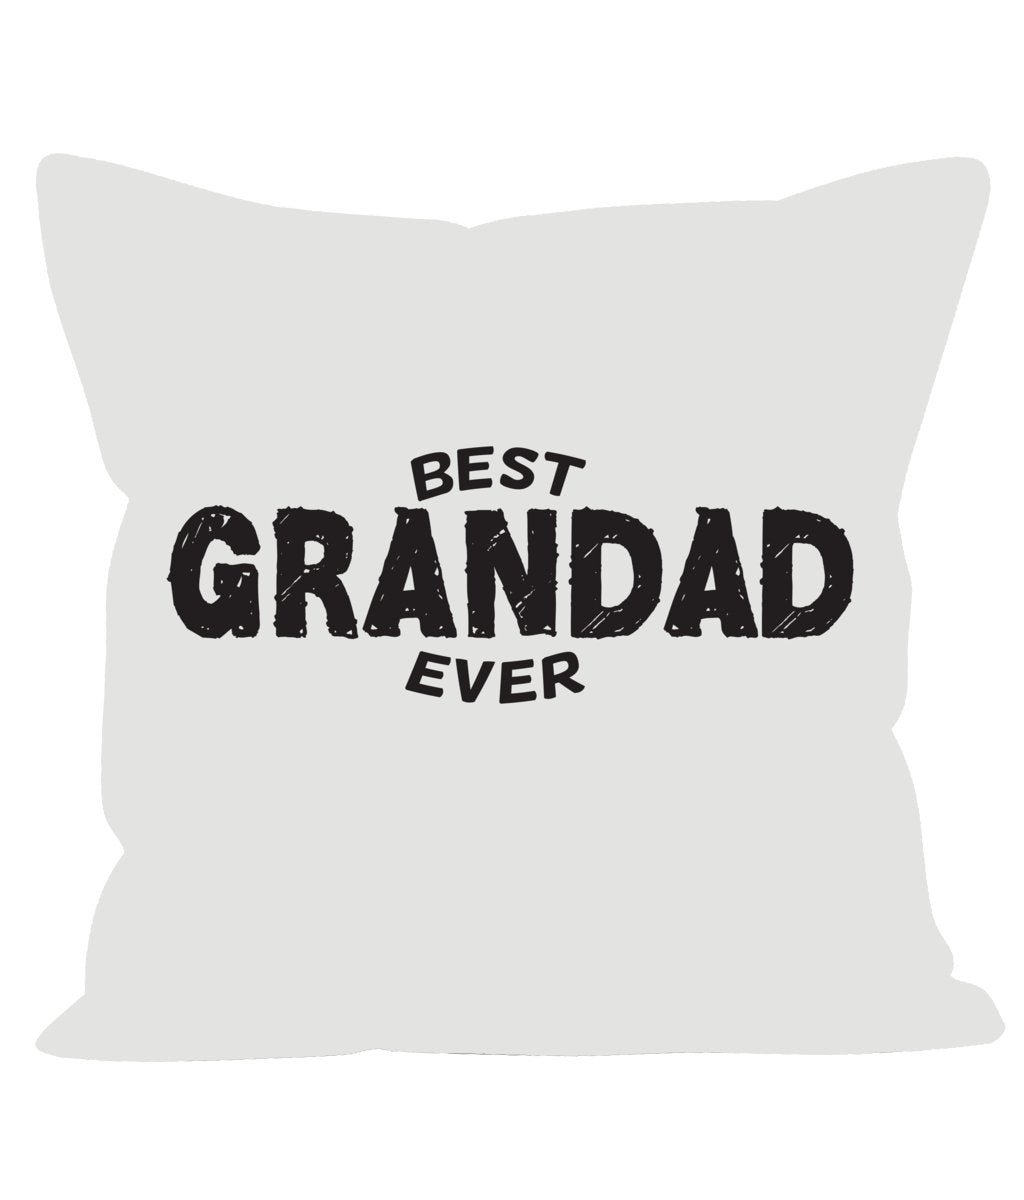 Best Grandad Ever Sofa Cushions - The Gift Project